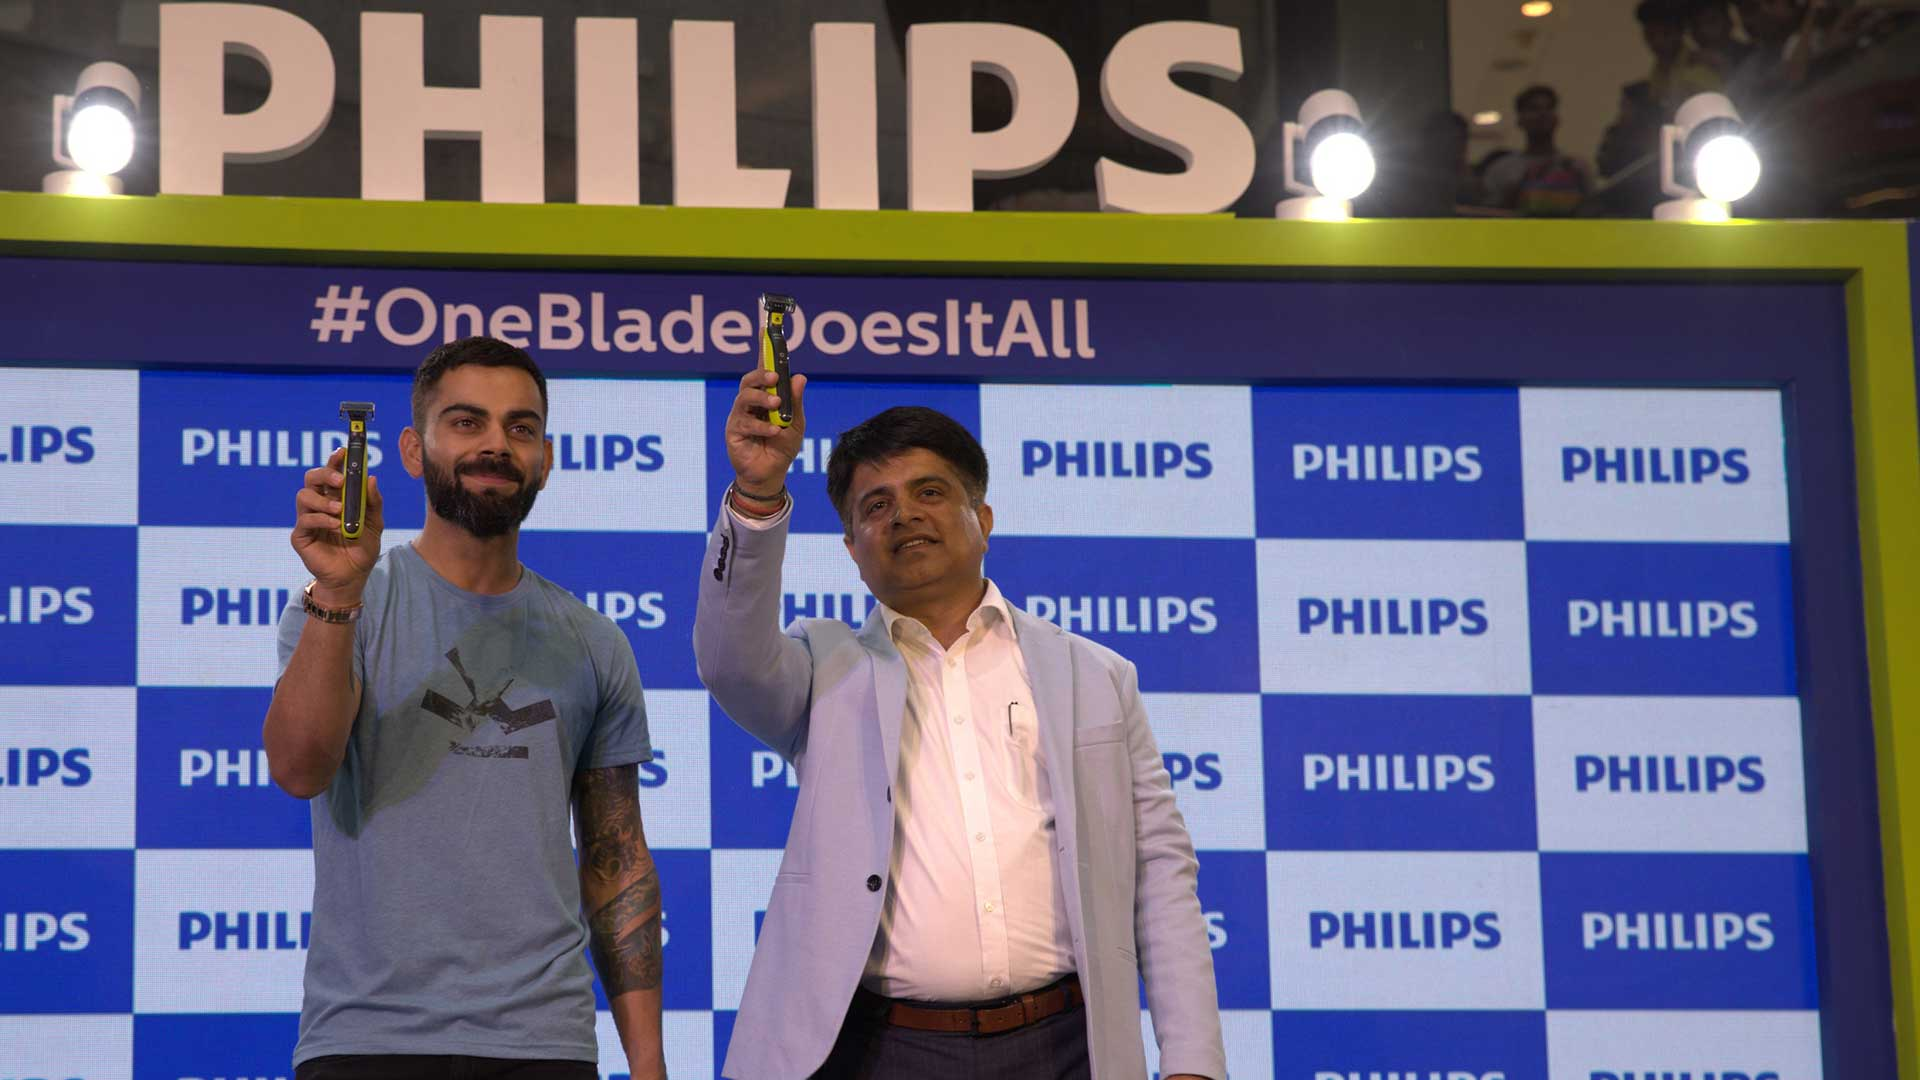 Download image (.jpg) Gulbahar Taurani, President, Personal Health, Philips Indian Subcontinent and Virat Kohli, Brand Ambassador, Philips Male Grooming at the launch of Philips OneBlade (opens in a new window)